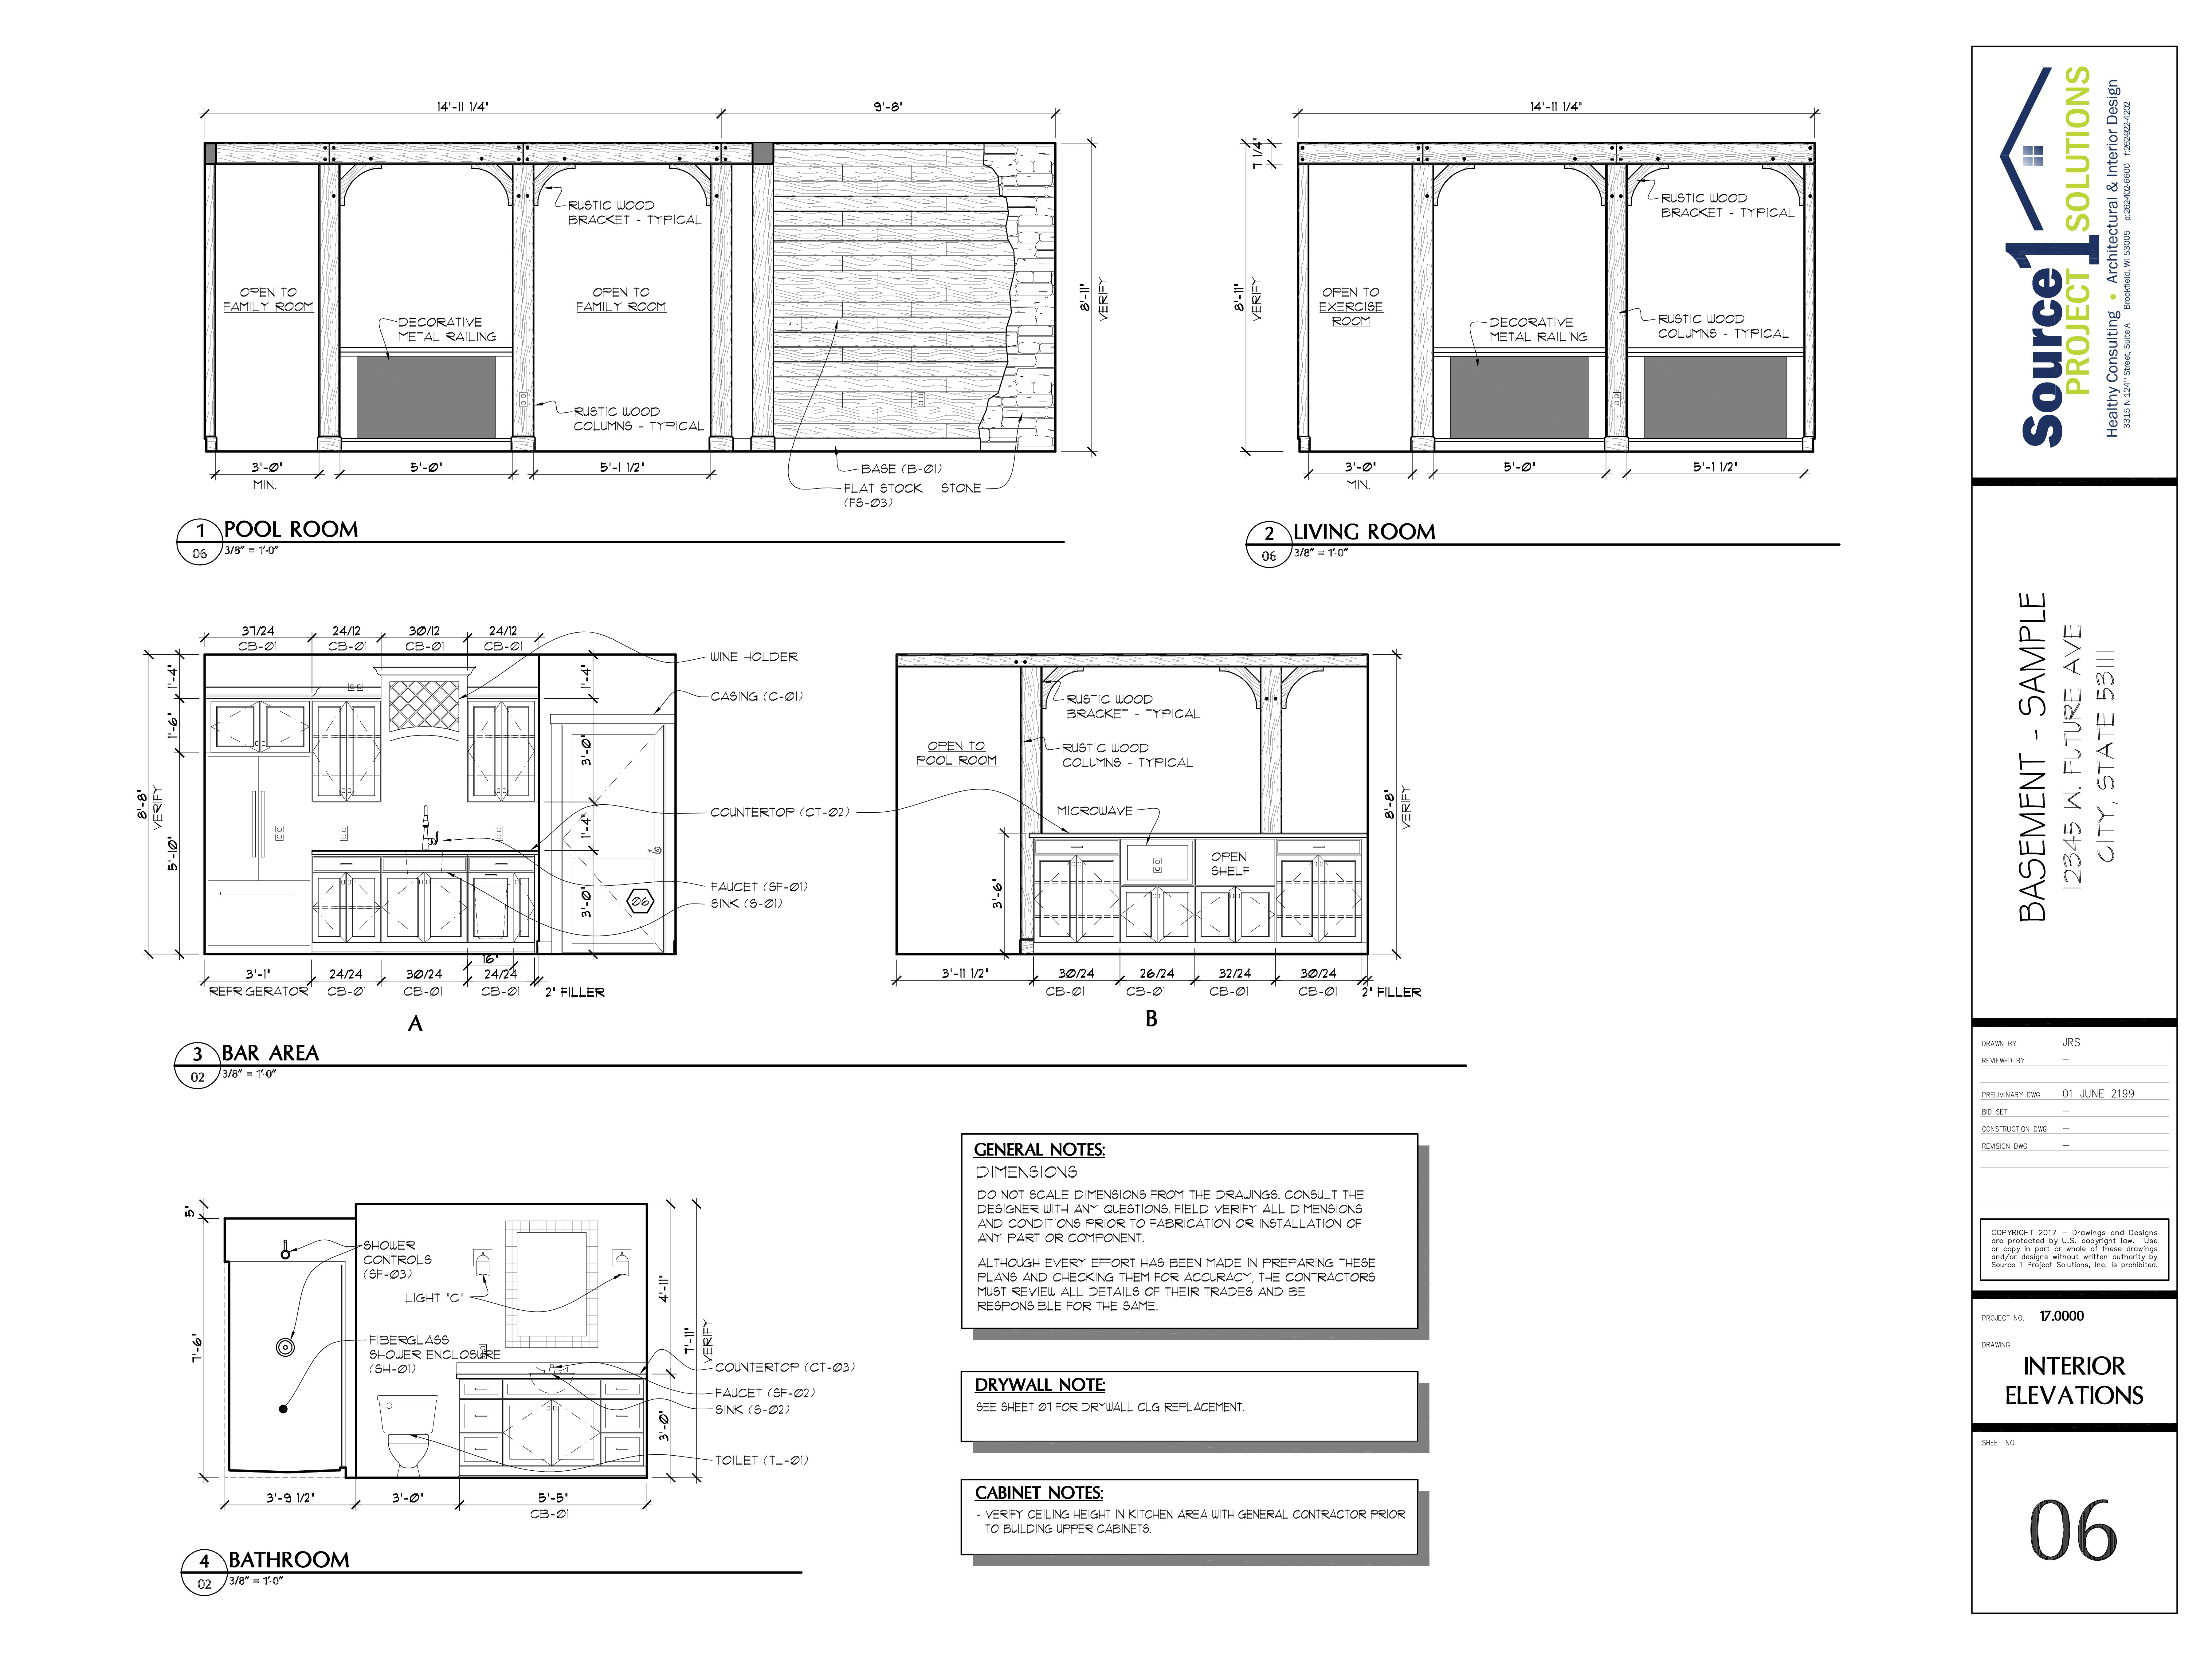 Source 1 Basement Plan - SAMPLE 01_6